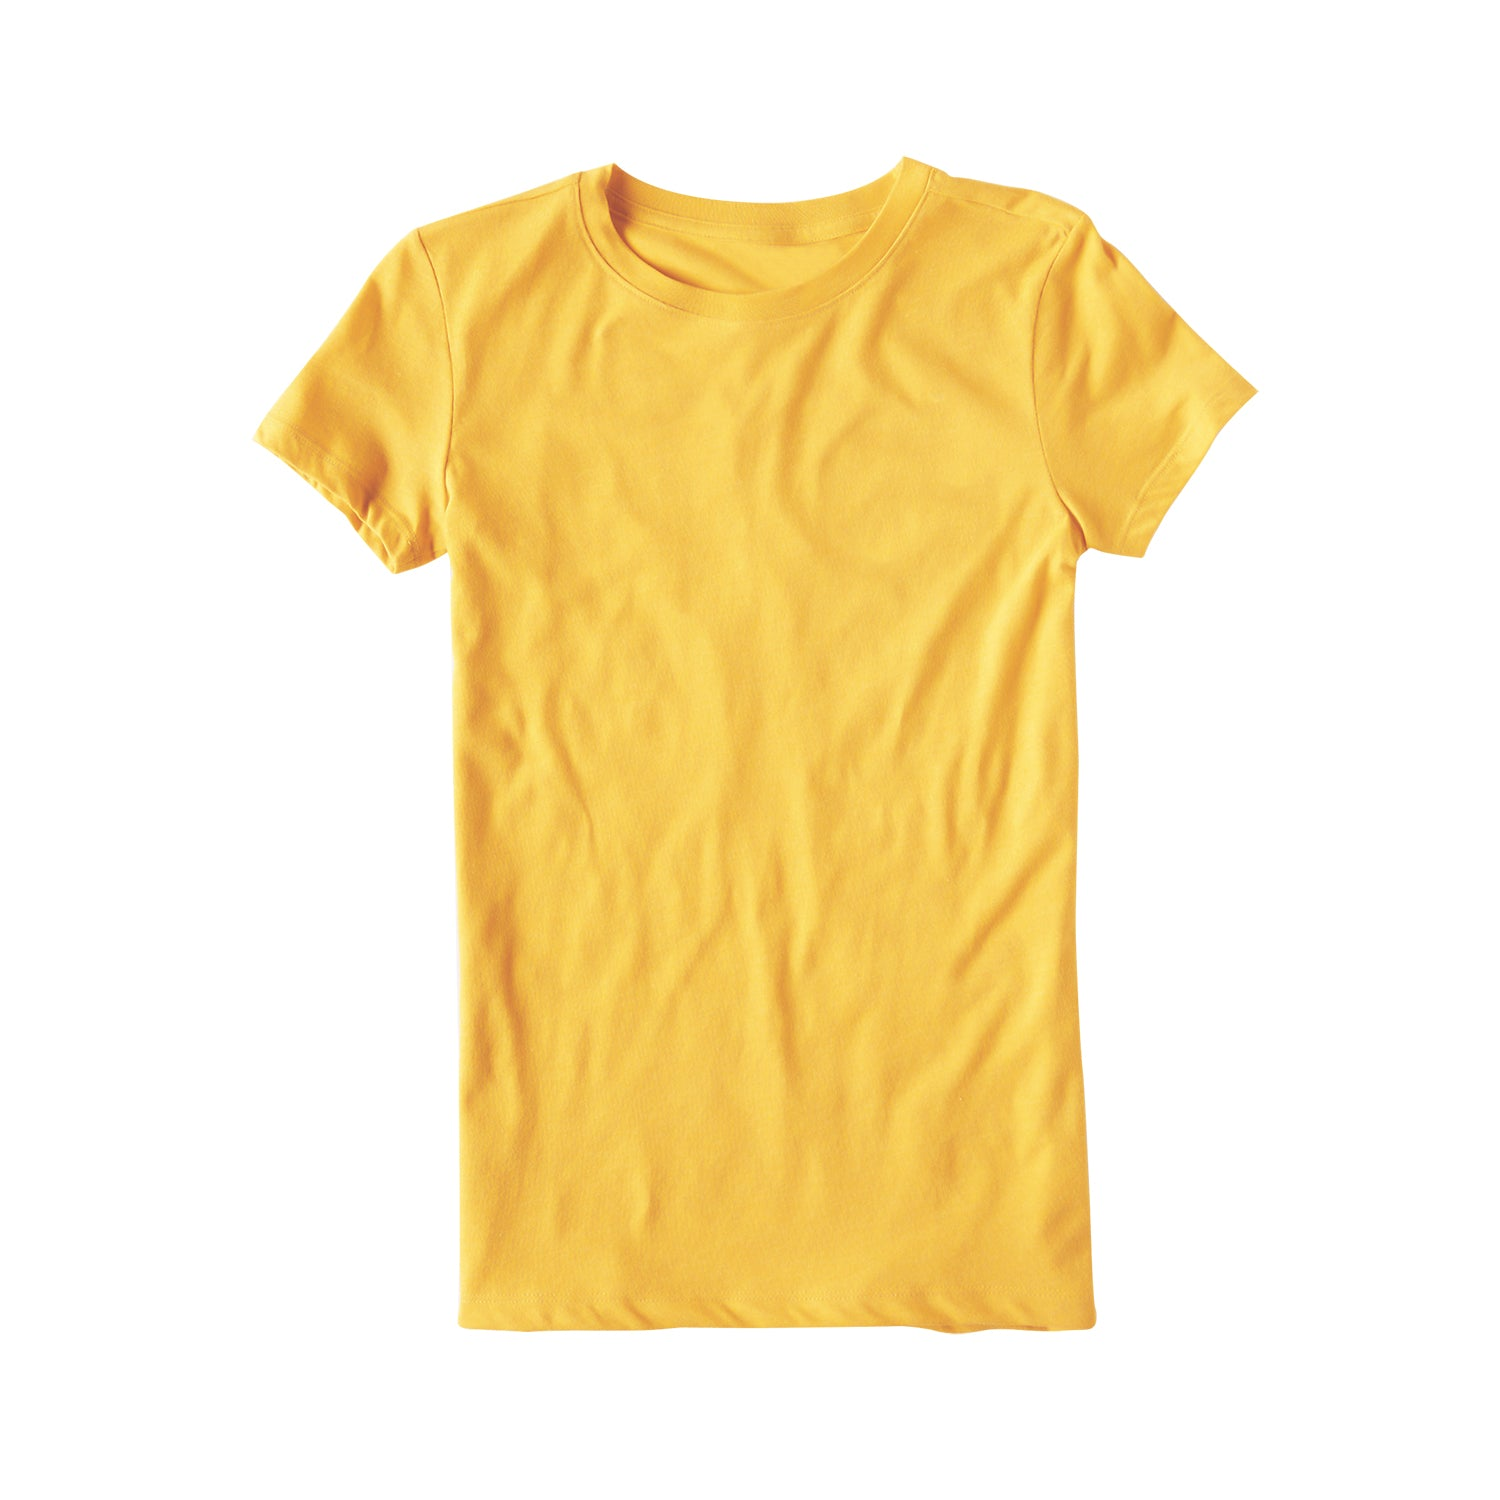 Popular Sport Single Jersey Crew Neck Tee Shirt For Women-Yellow-BE9685